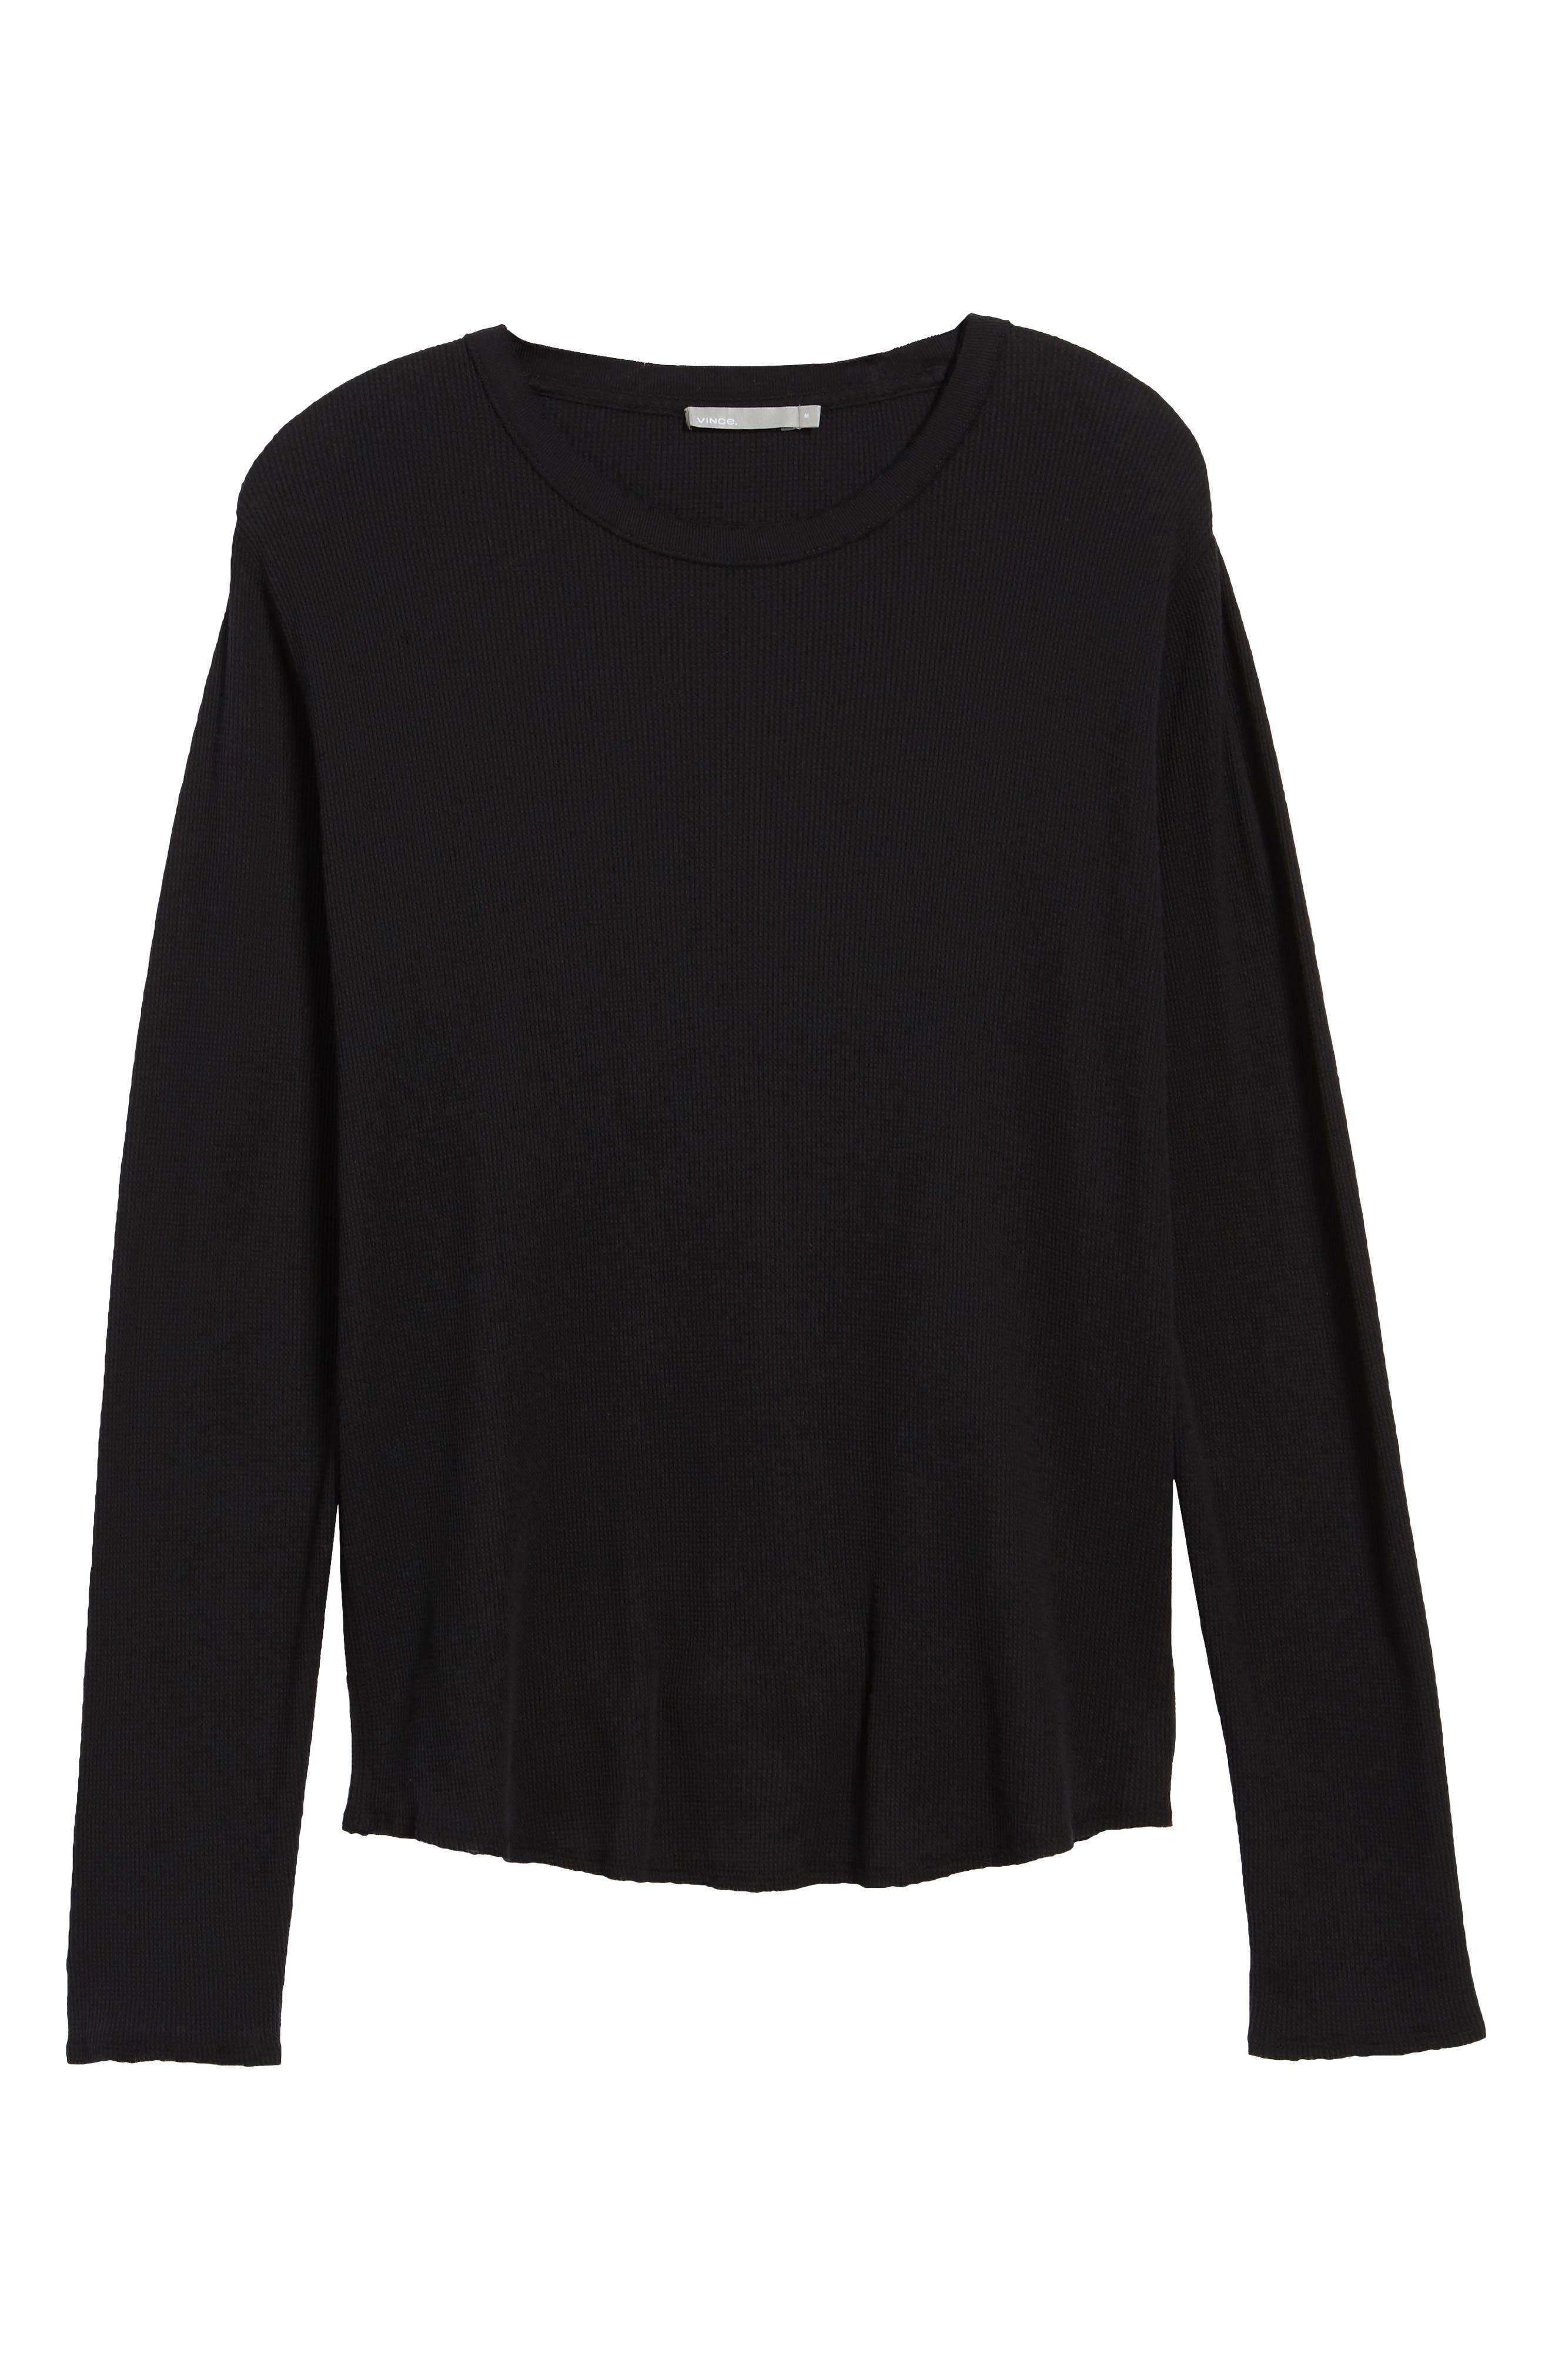 Thermal Knit Long Sleeve T-Shirt,                             Alternate thumbnail 6, color,                             001